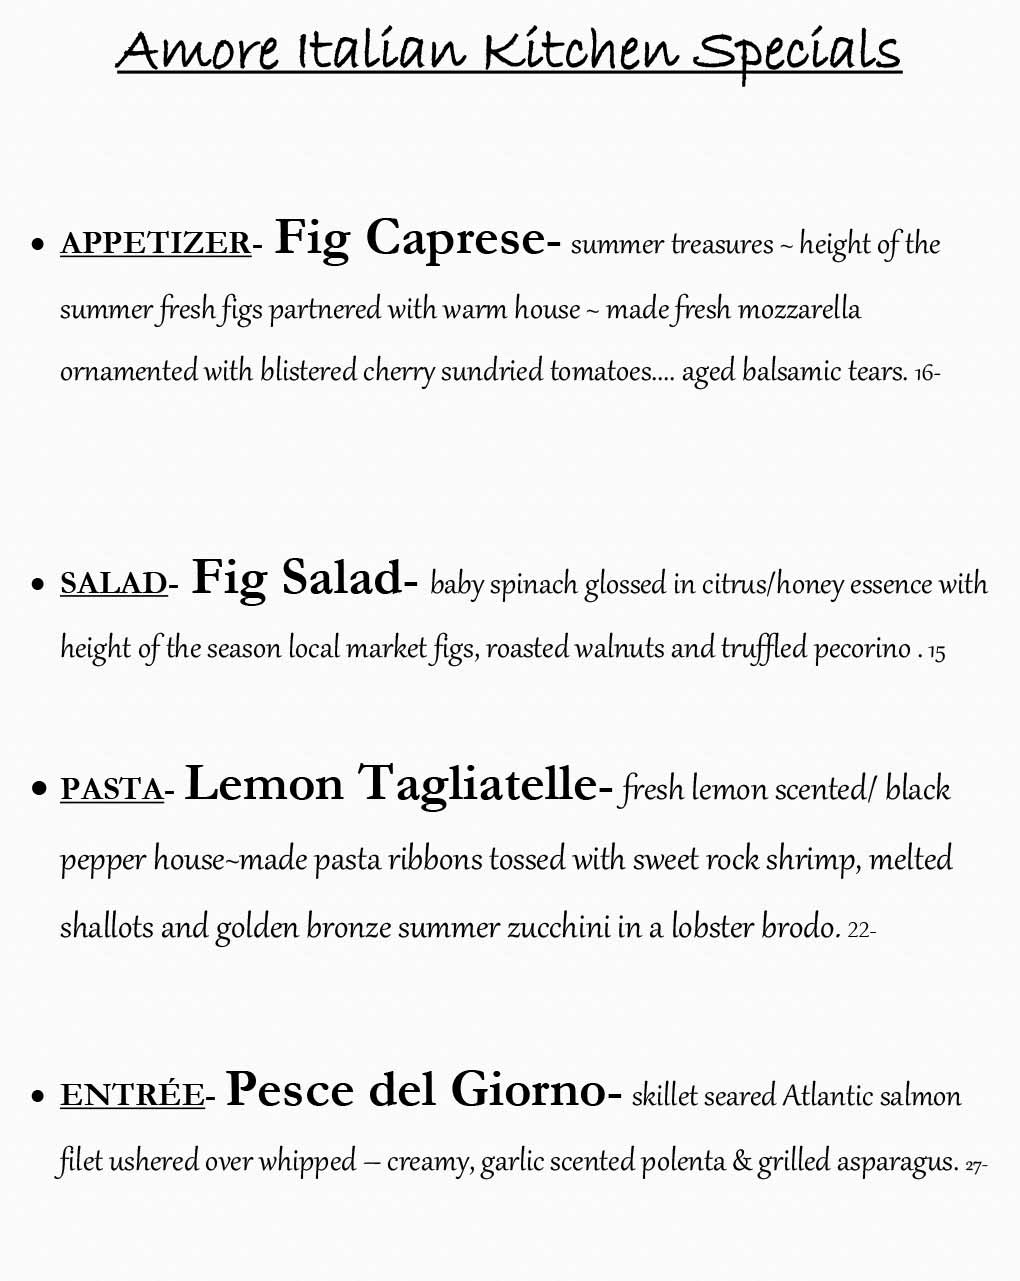 Amore Weekly Specials from 09/14 - 09/20